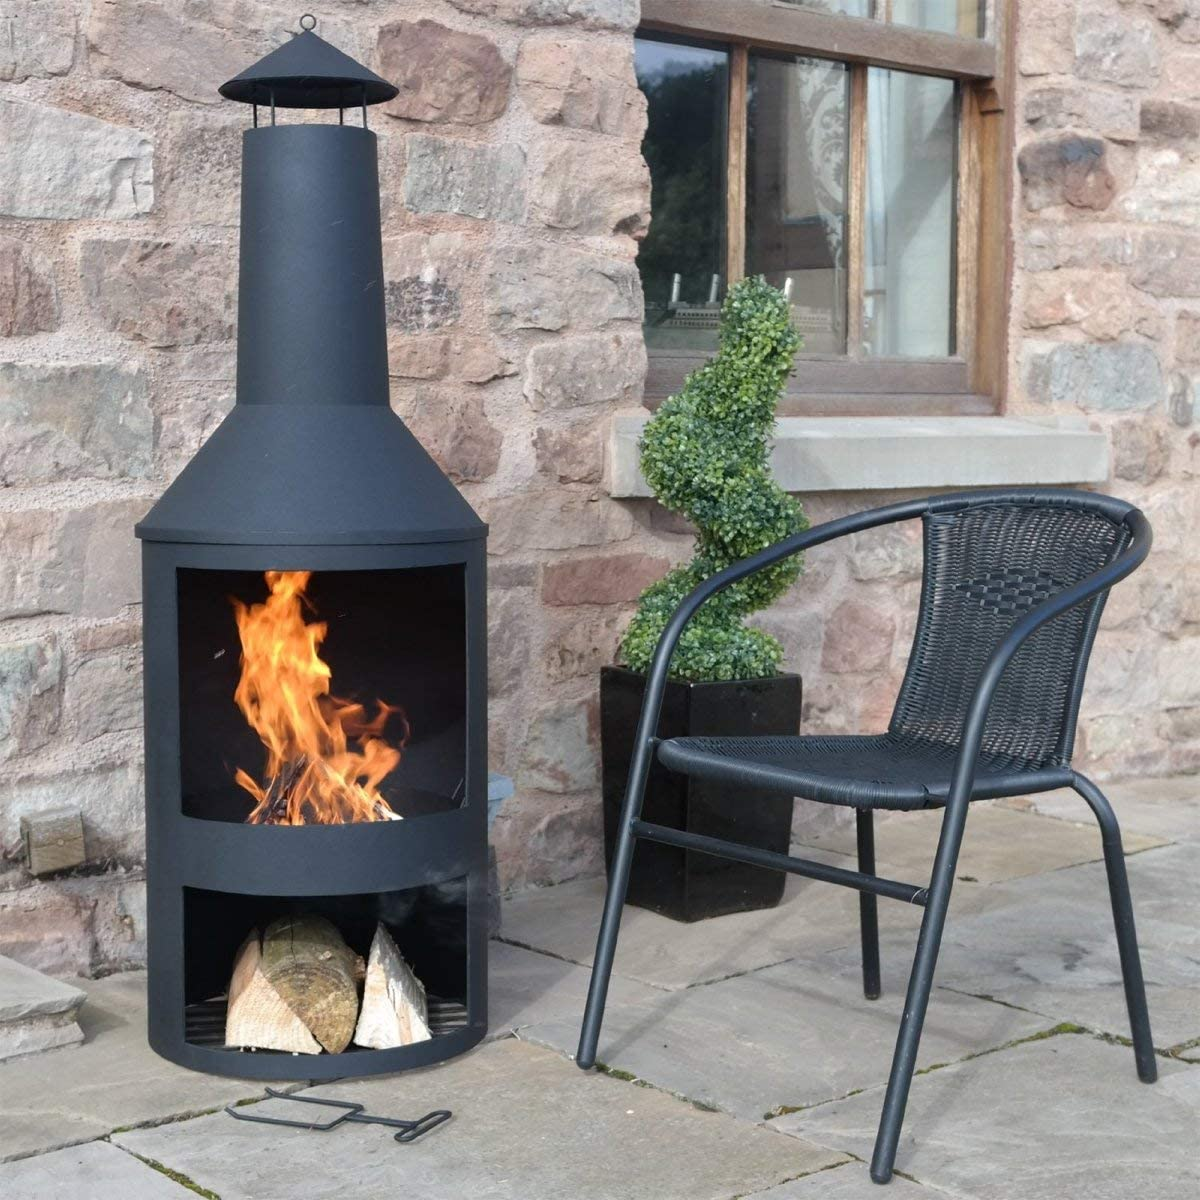 Includes Poker wegist-weg.com FireStove Ming Patio Stove Fire Pit Diameter 45 x 135 cm Black Wood Stove Heat Resistant Powder-Coated Garden Stove Rust-Proof Fire Basket with Stable Stand